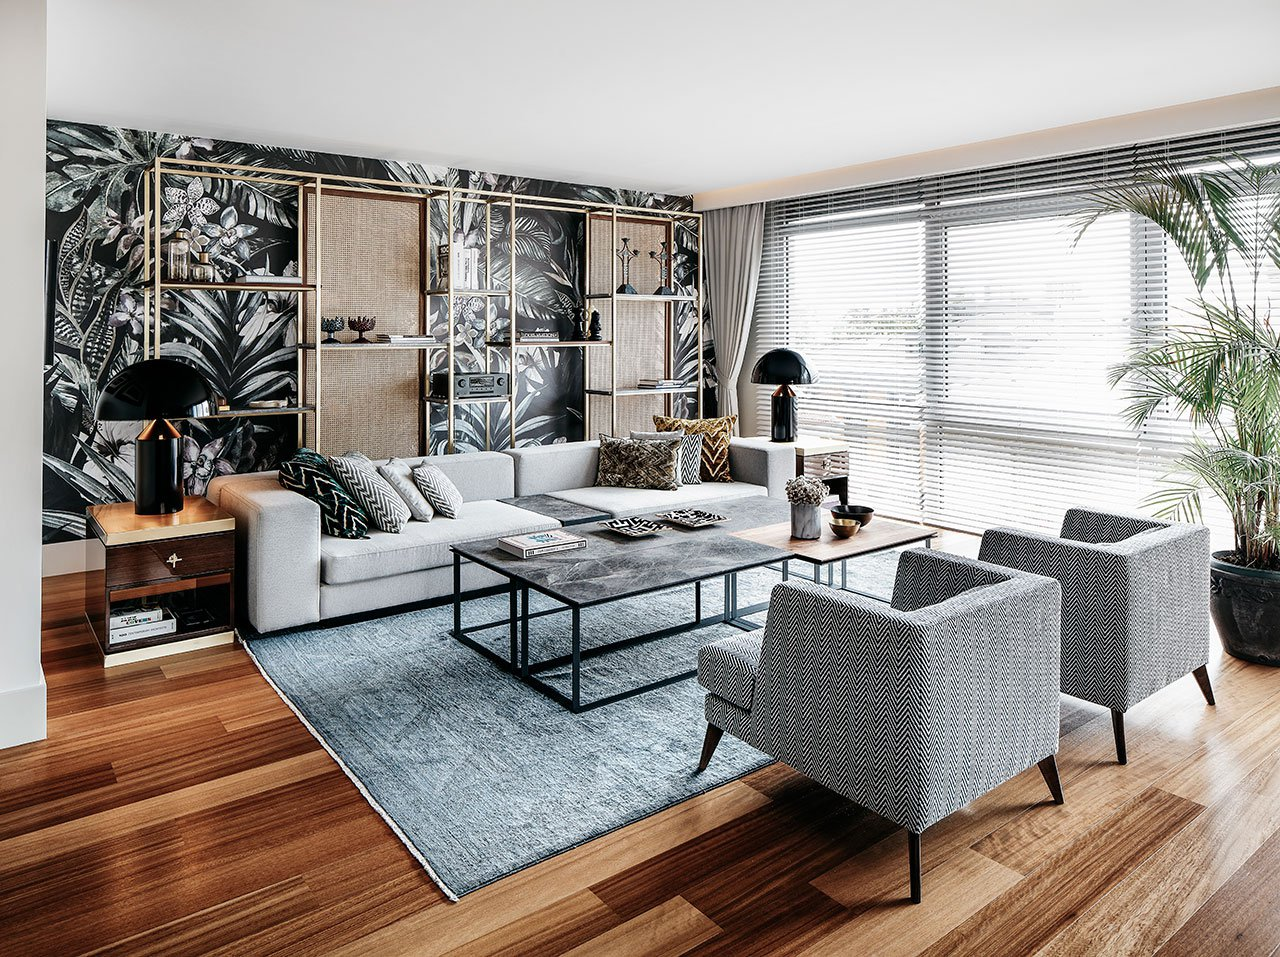 pics Evolution Of The Small Apartment By Escapefromsofa